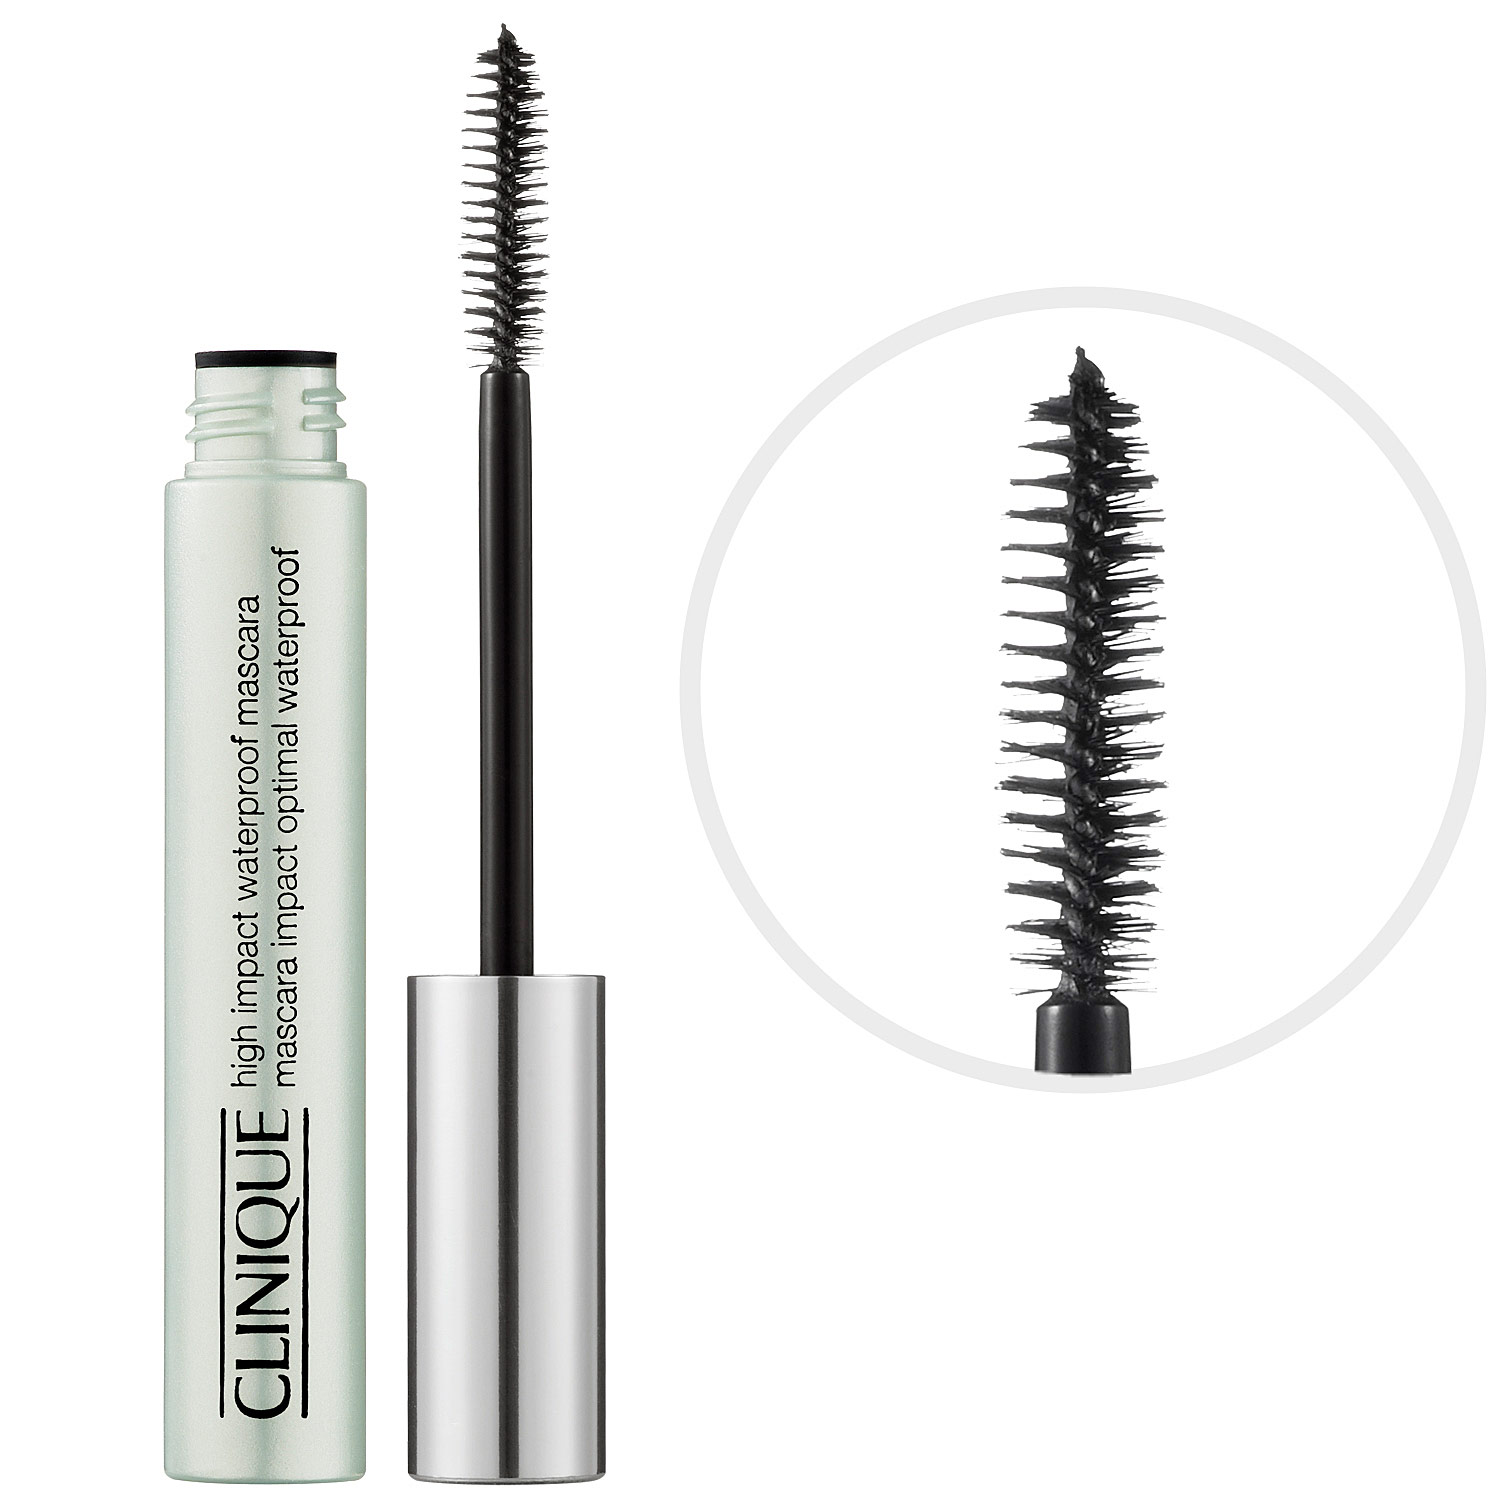 Clinique High Impact Waterproof Mascara Review - sparkleshinylove